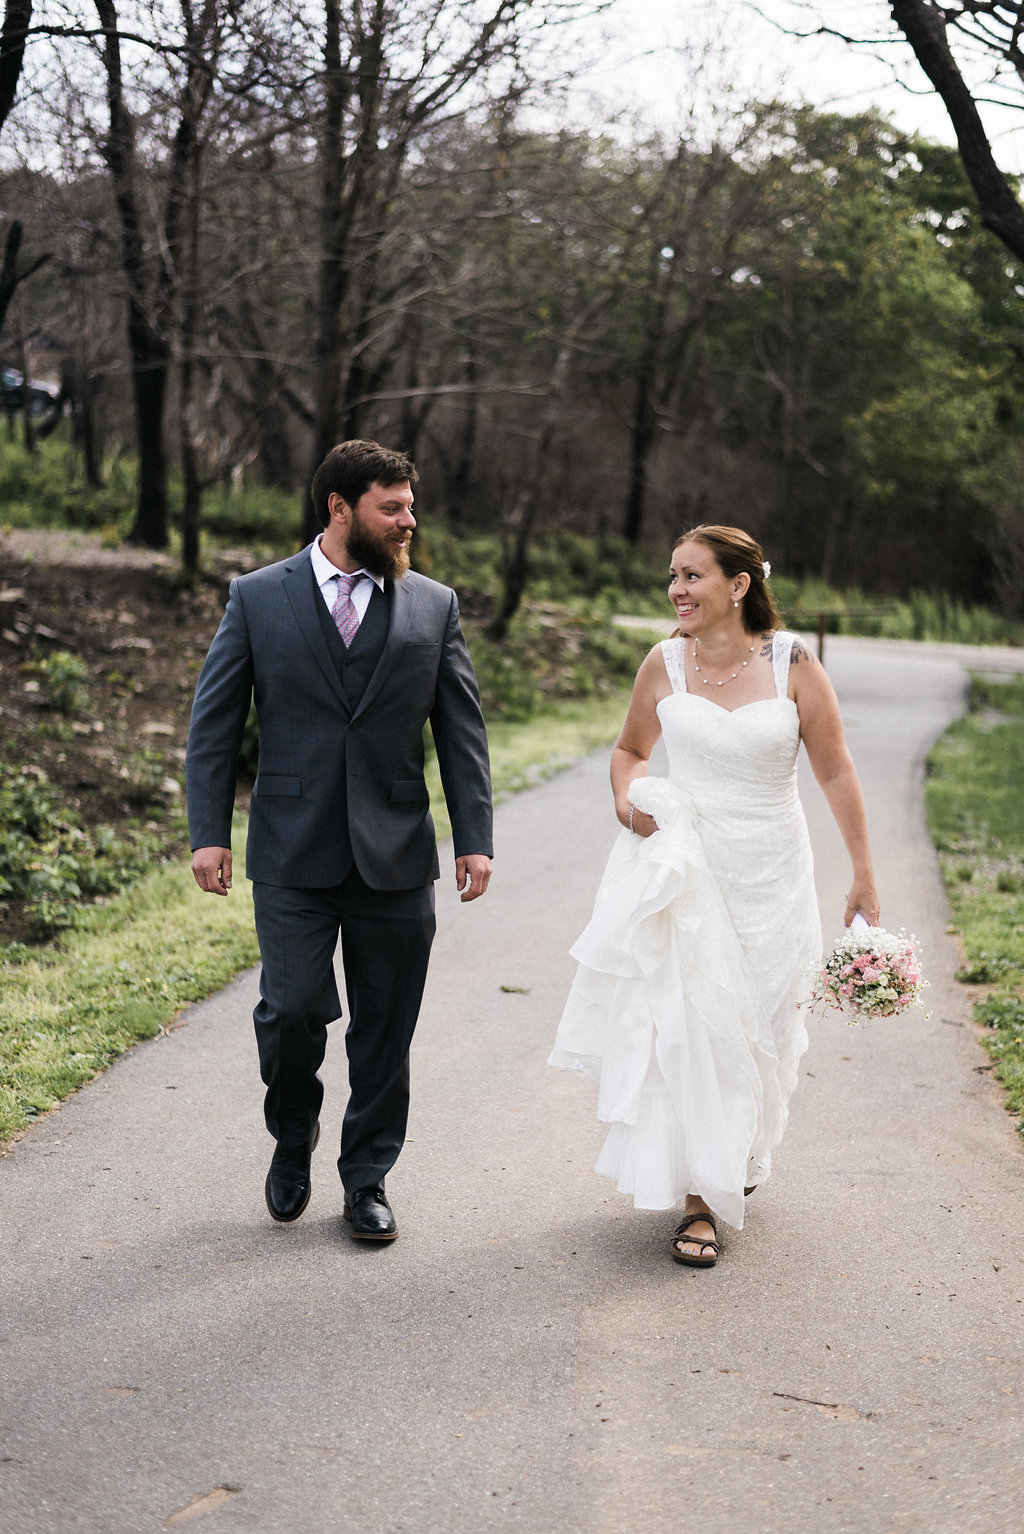 Bride and groom walking together